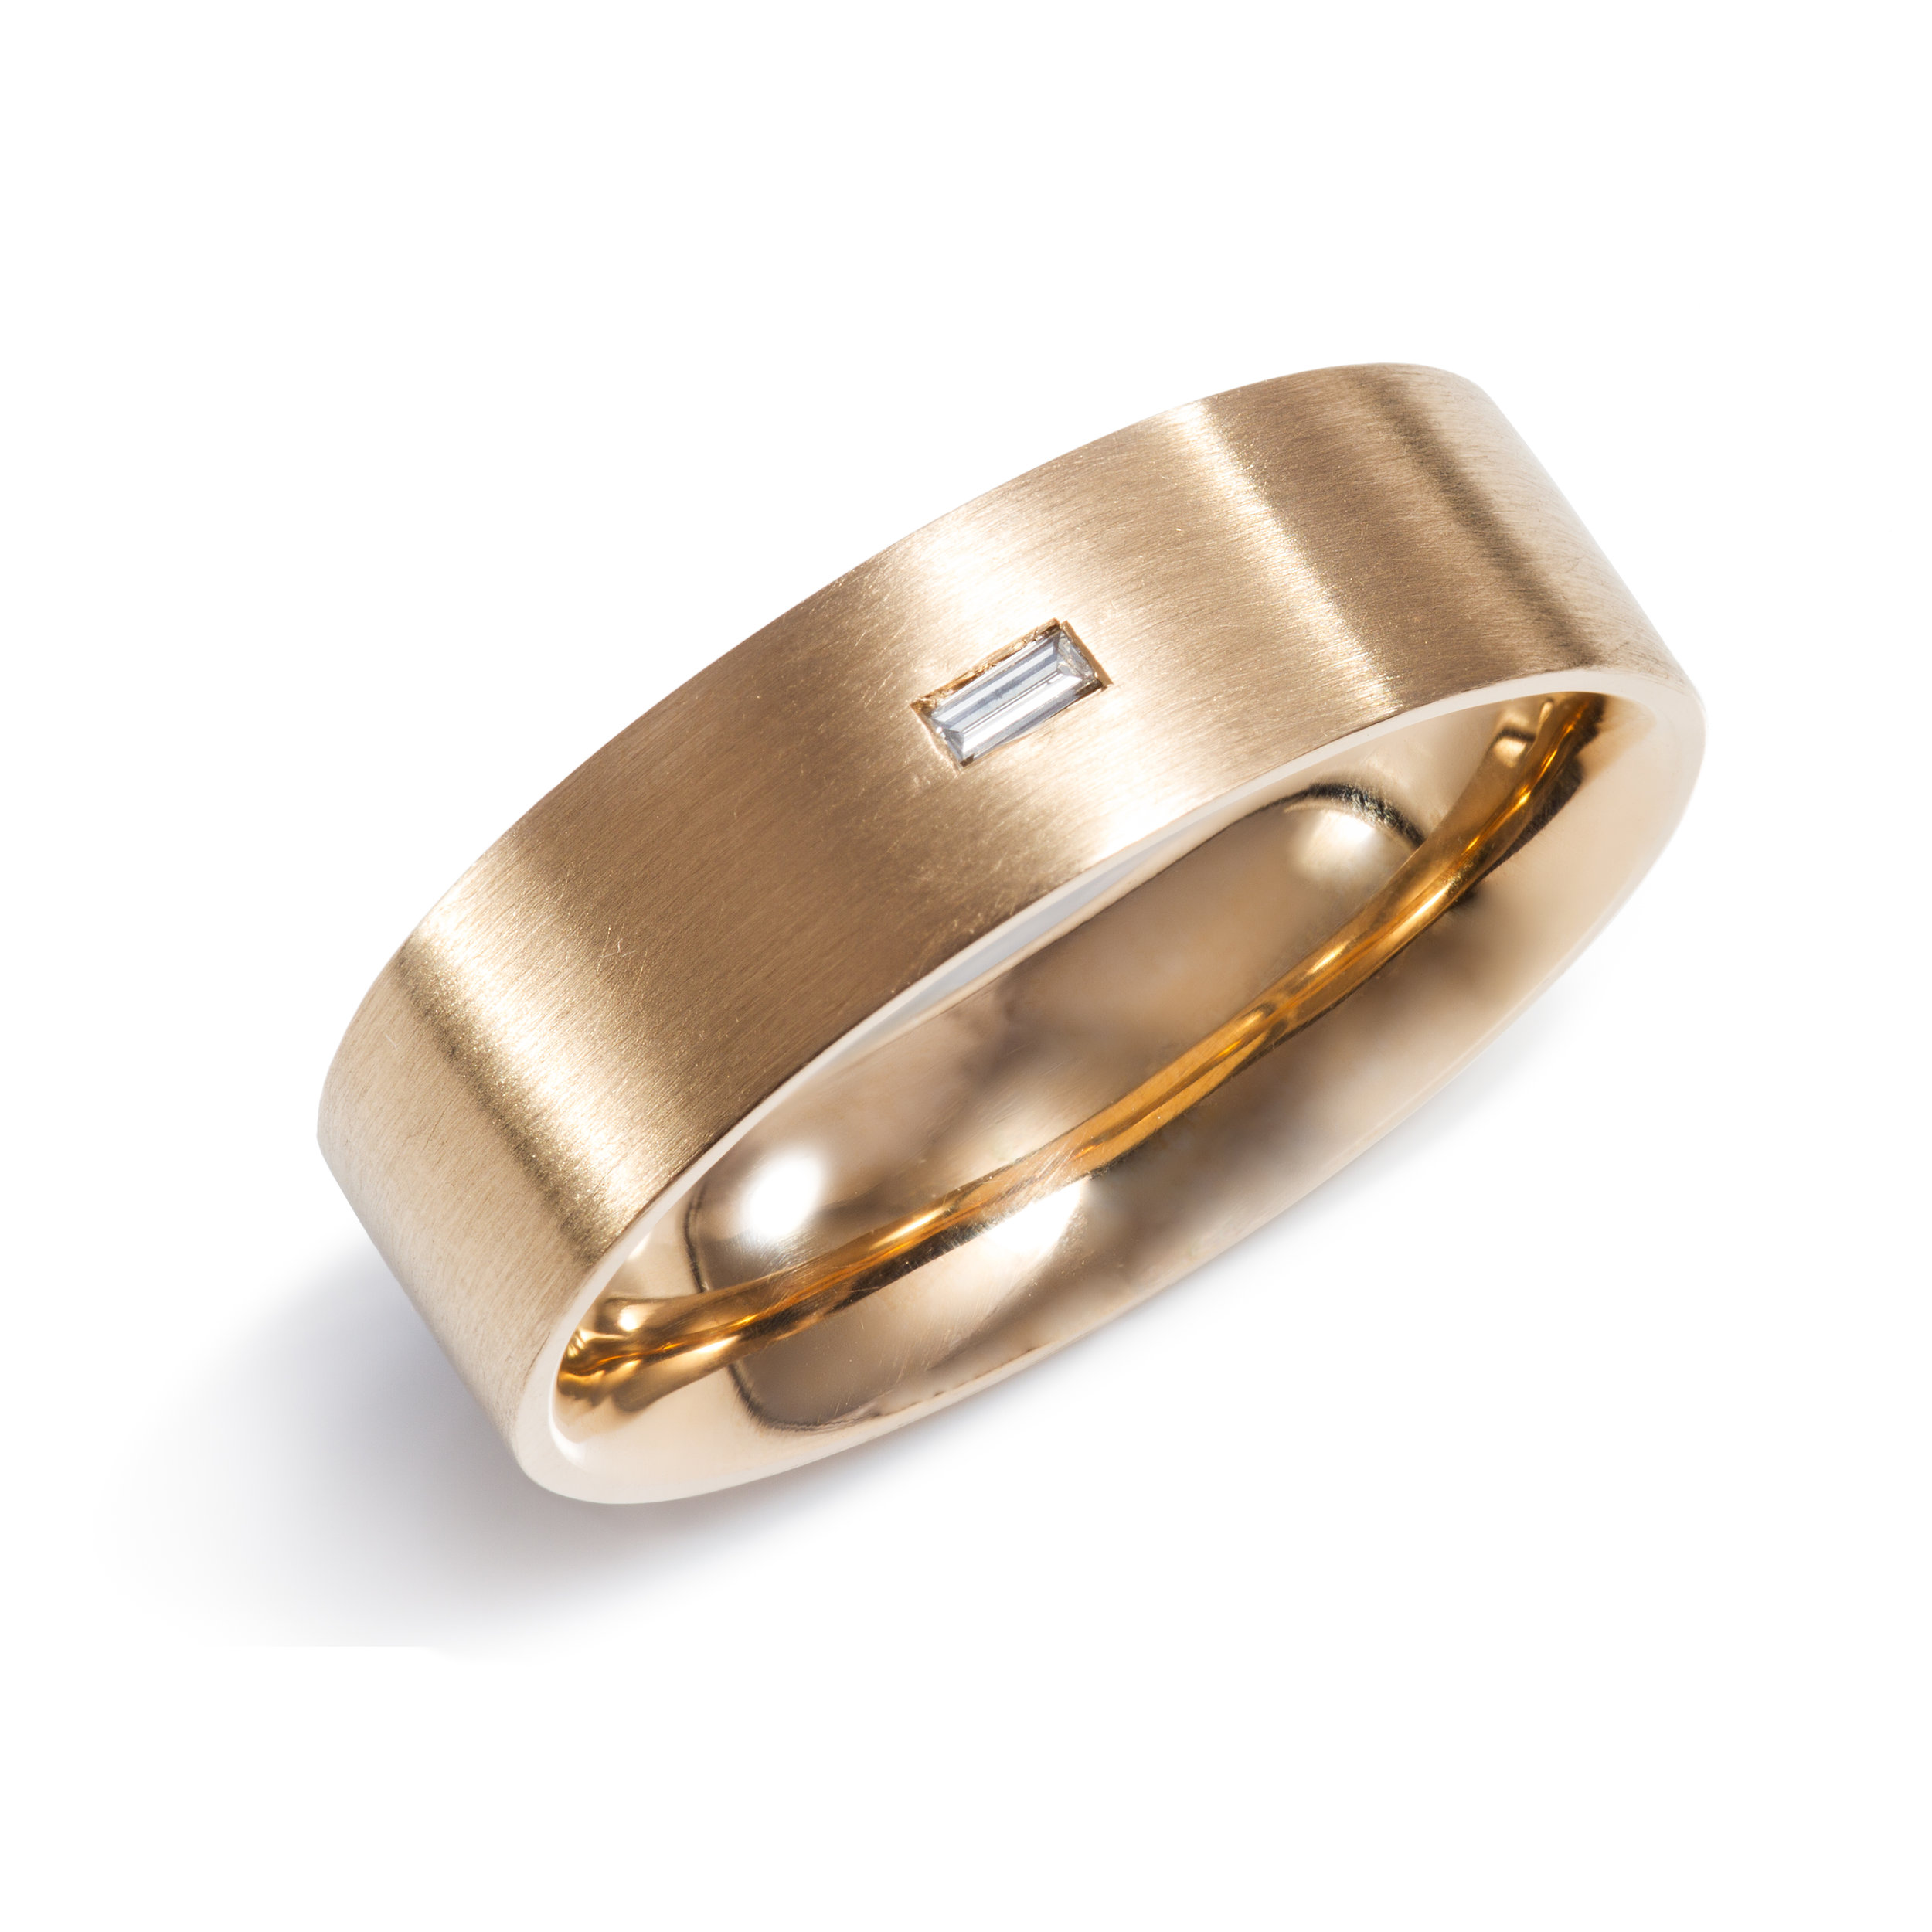 9ct rose gold and diamond ring - see available to buy